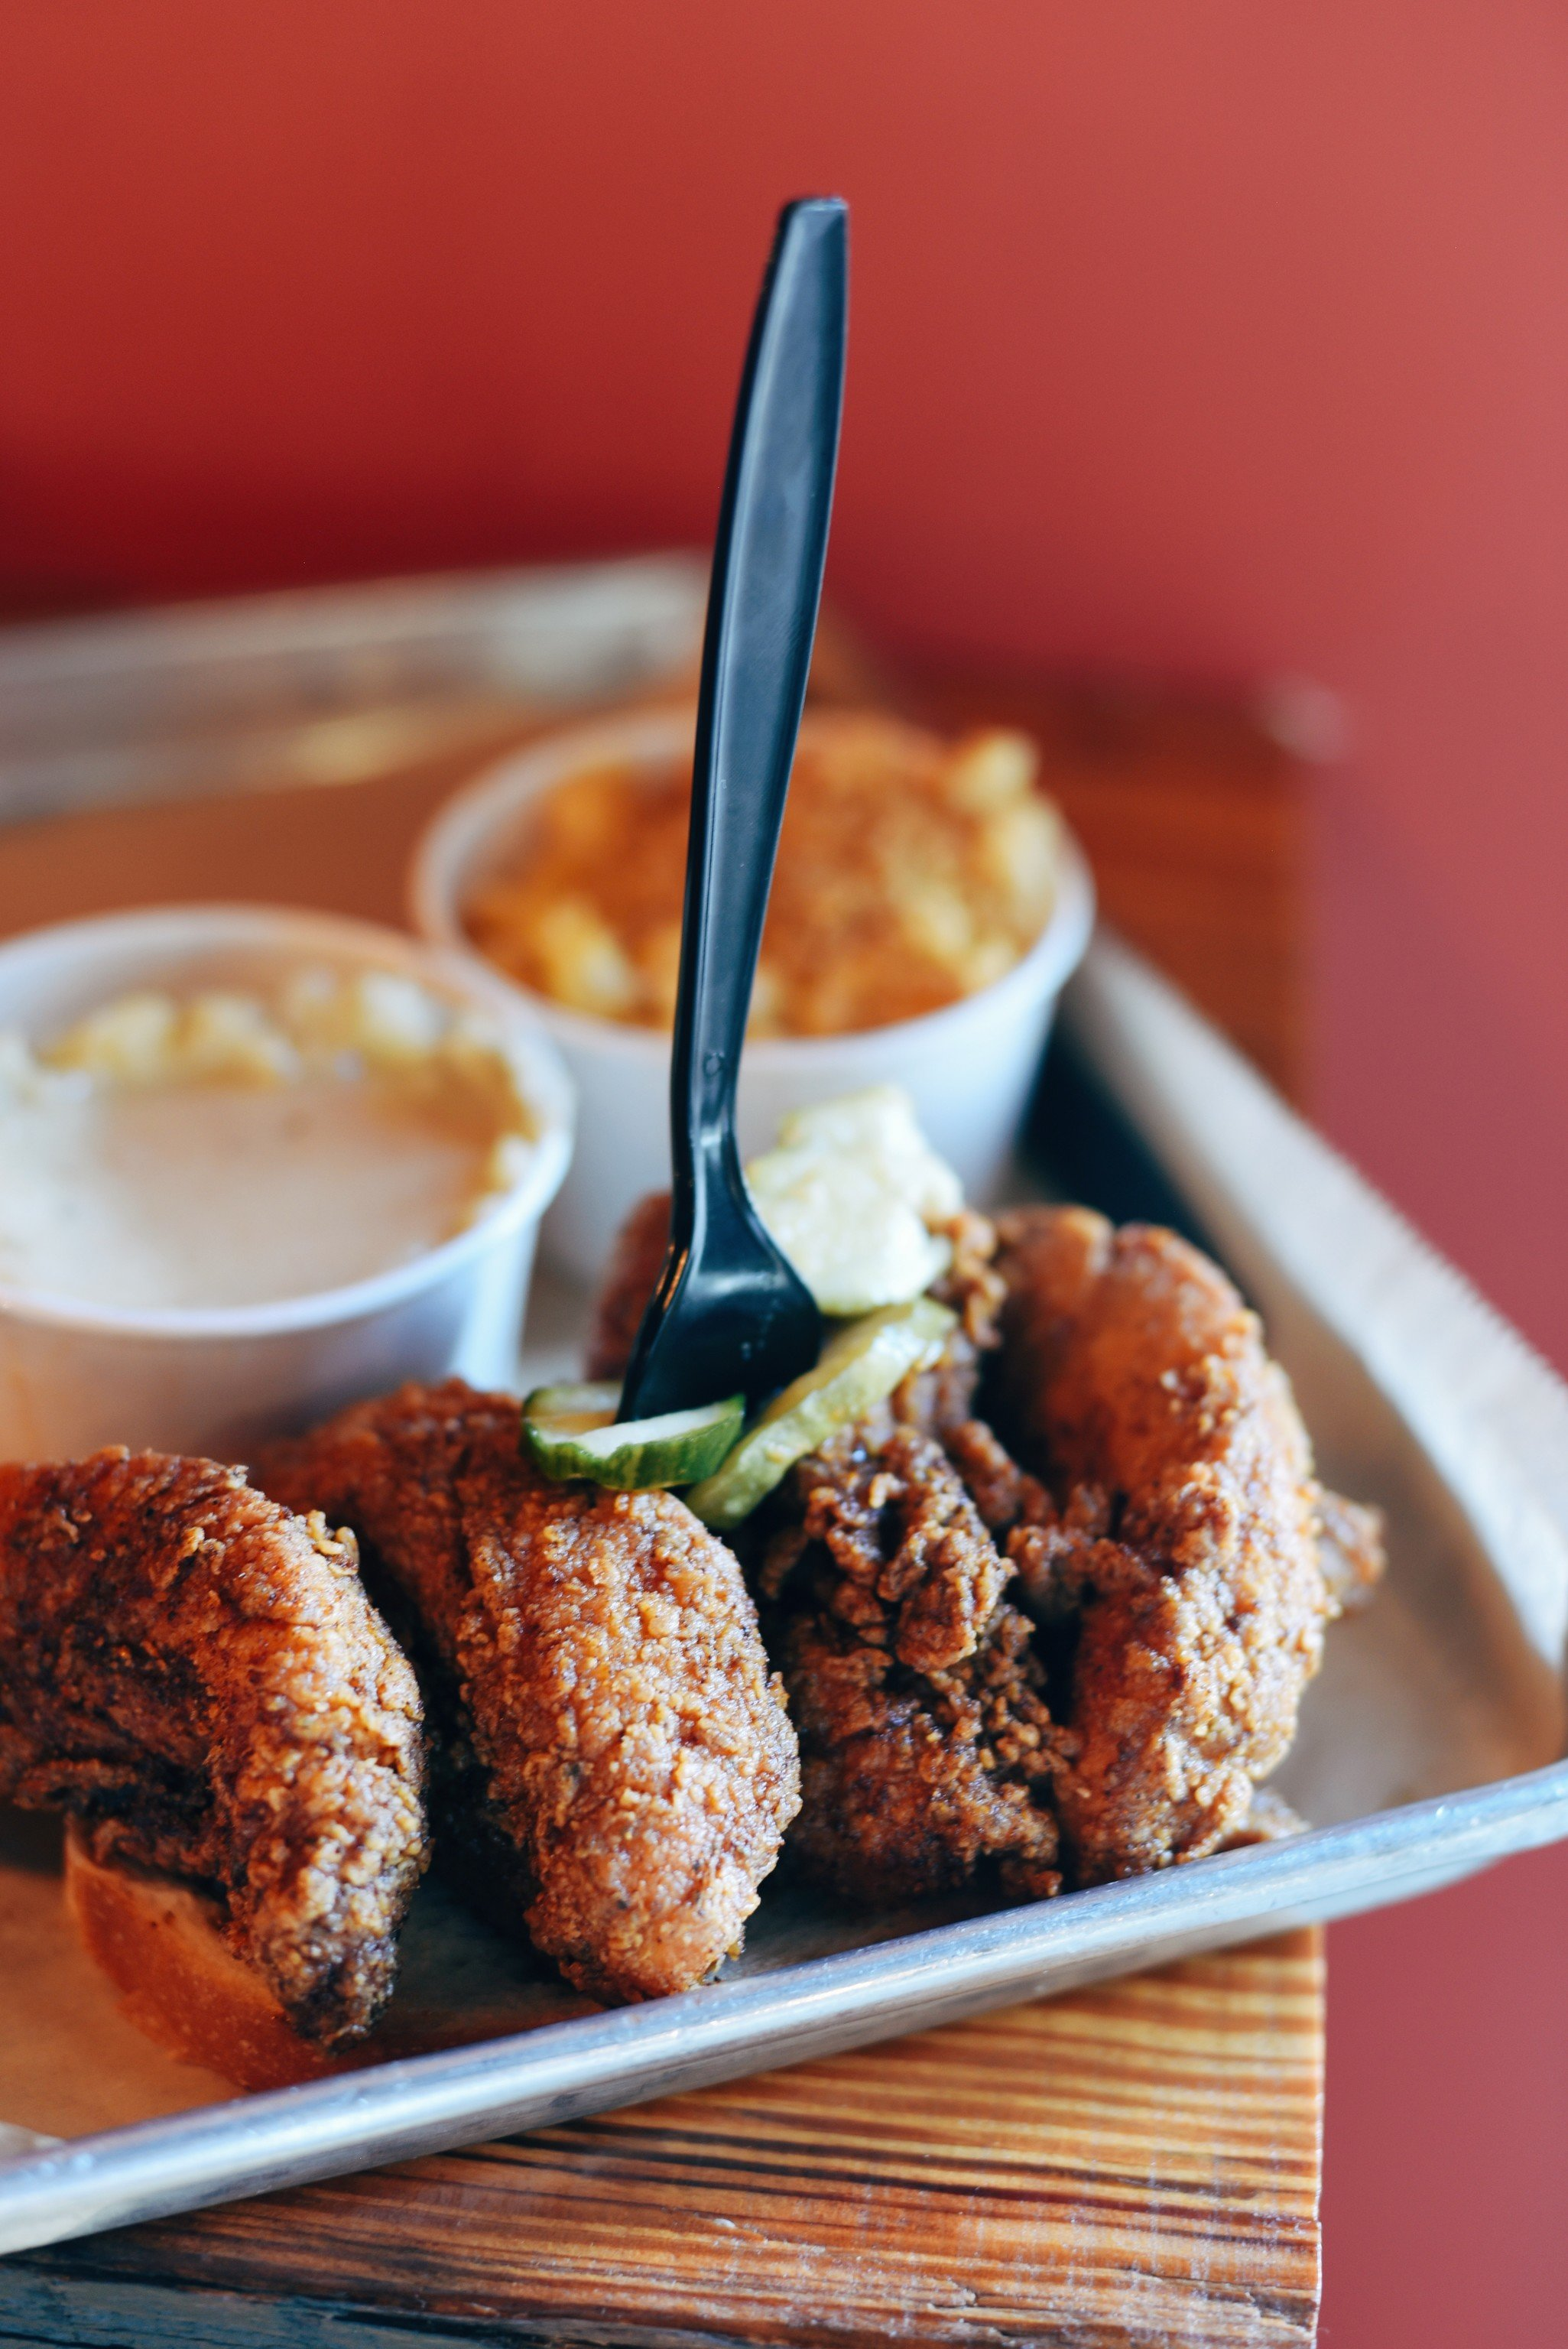 Trip Ideas food dish plate fried food cuisine meatball meat meal produce asian food fried chicken coconut